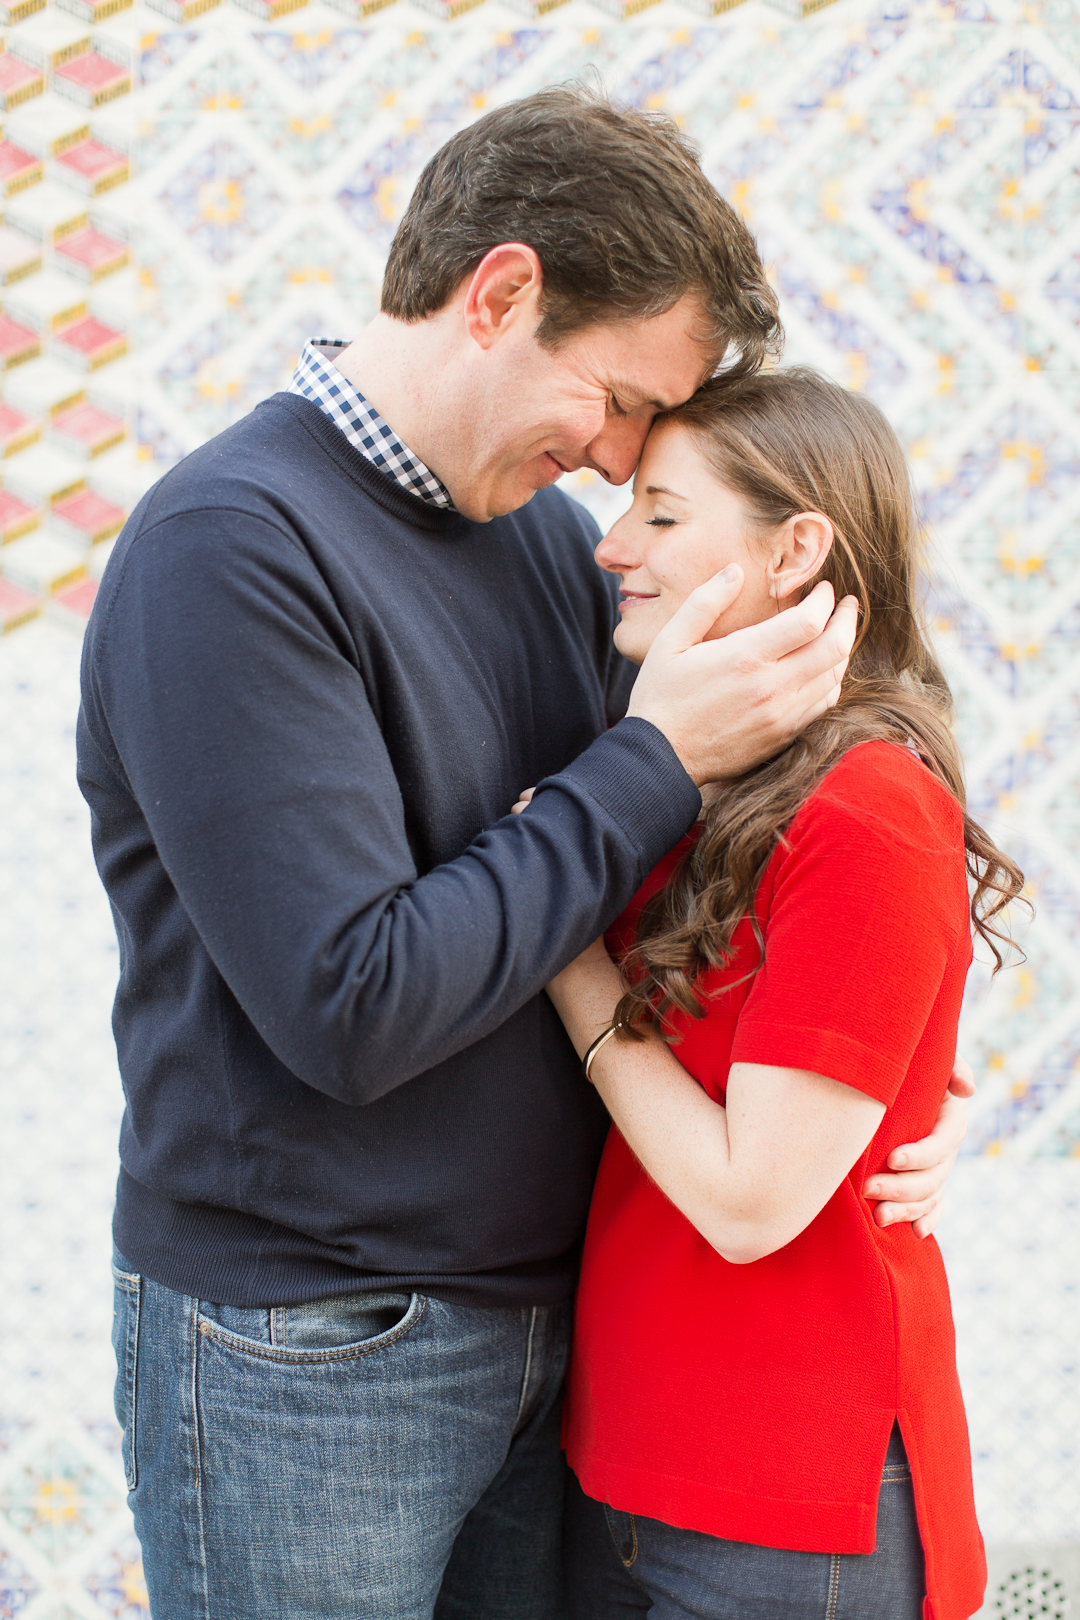 Melissa Kruse Photography - Tess & Brendan Engagement Photos-61.jpg